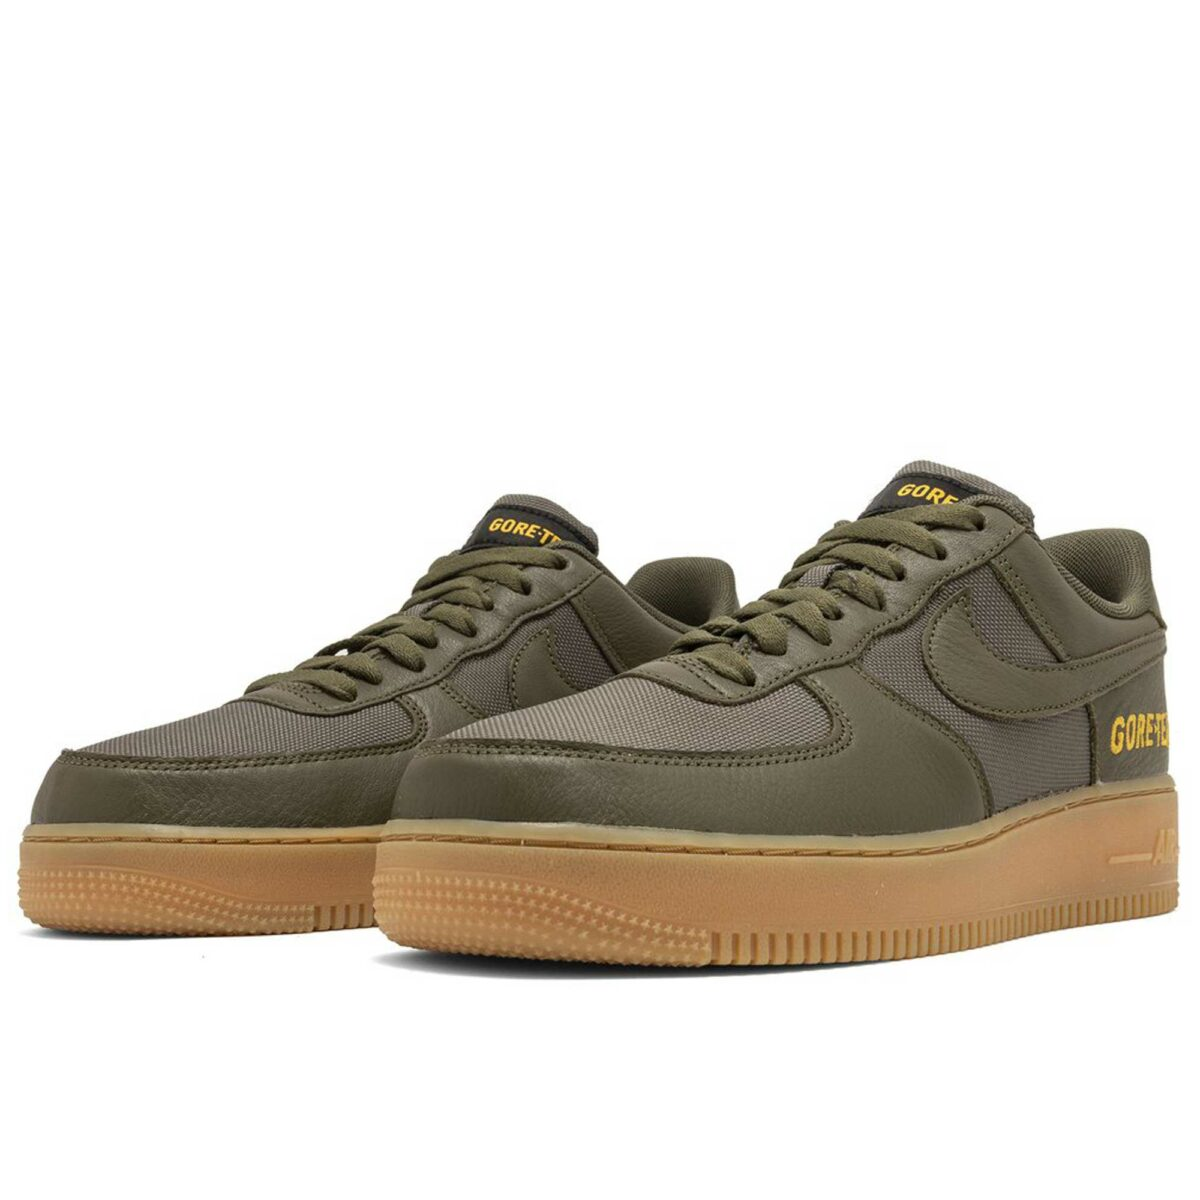 nike air force 1 low gore tex medium olive CK2630_200 купить